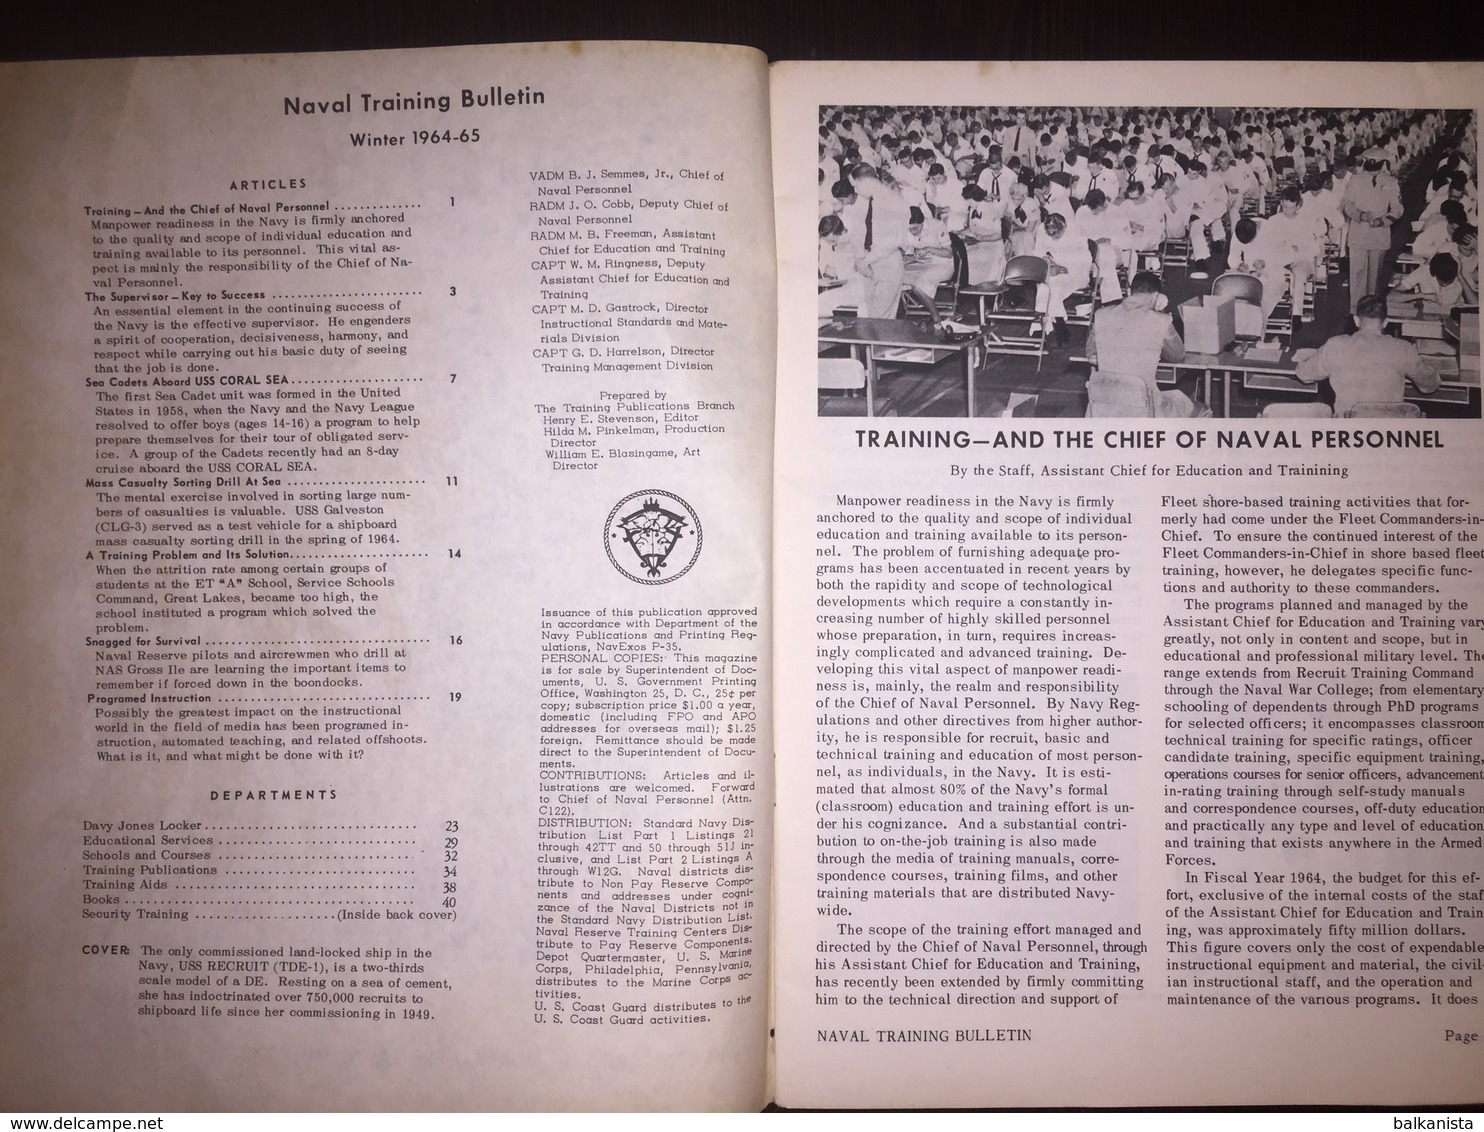 American US Army Naval Training Bulletin Winter 1964-1965 - Naval Institute - Forces Armées Américaines